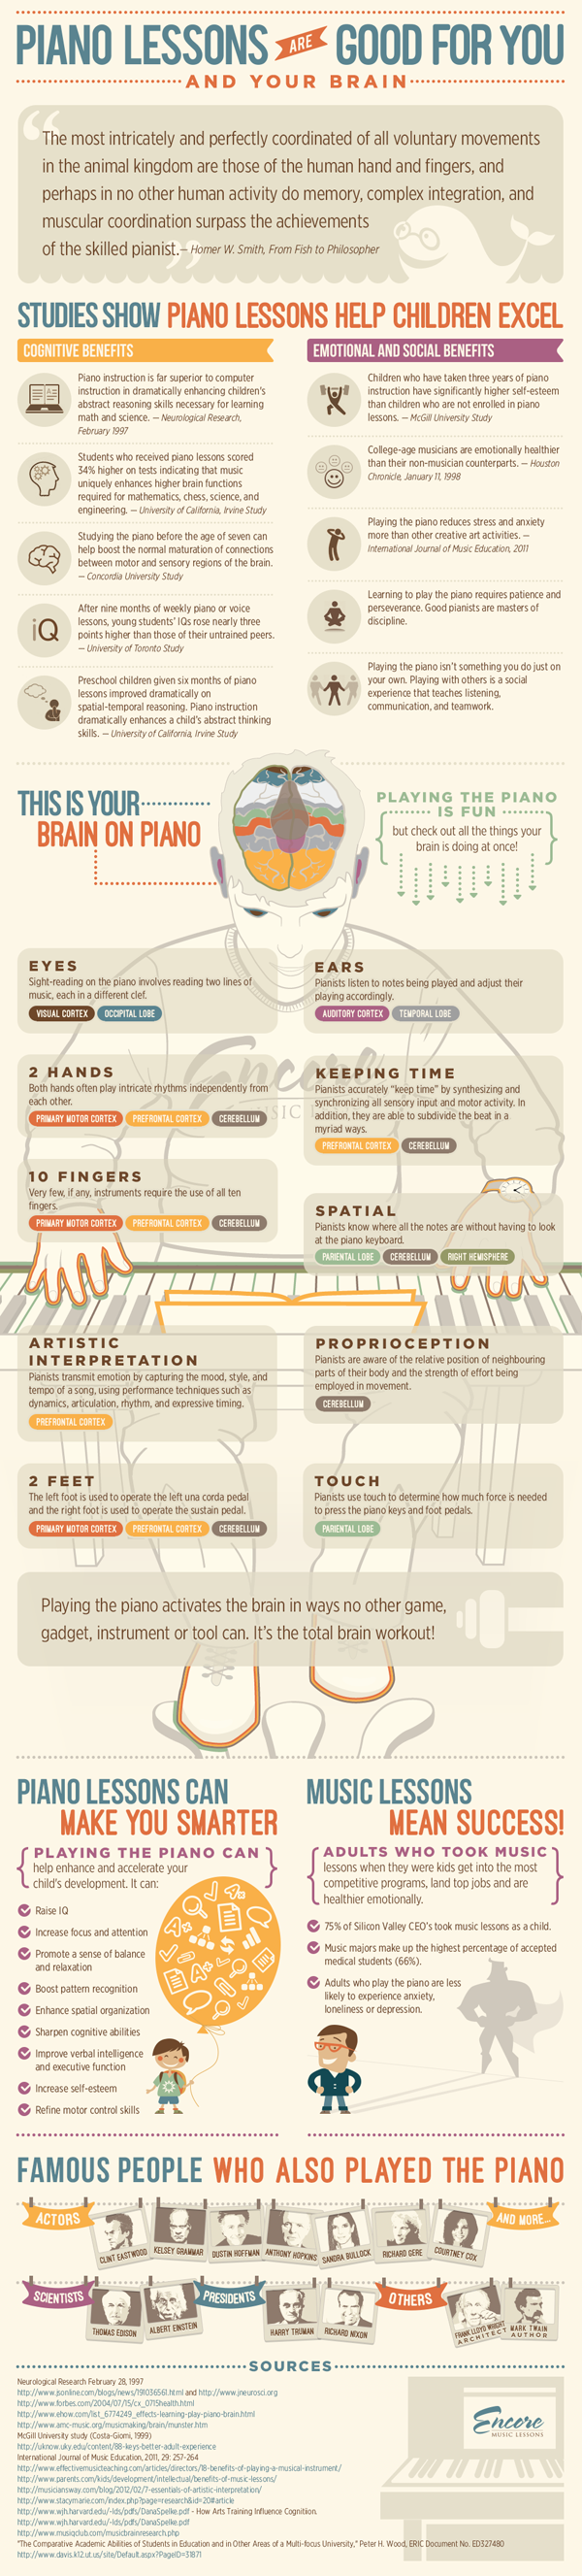 A Journal of Musical ThingsInfographic: Why Piano Lessons Are Good for You » A Journal of Musical Things